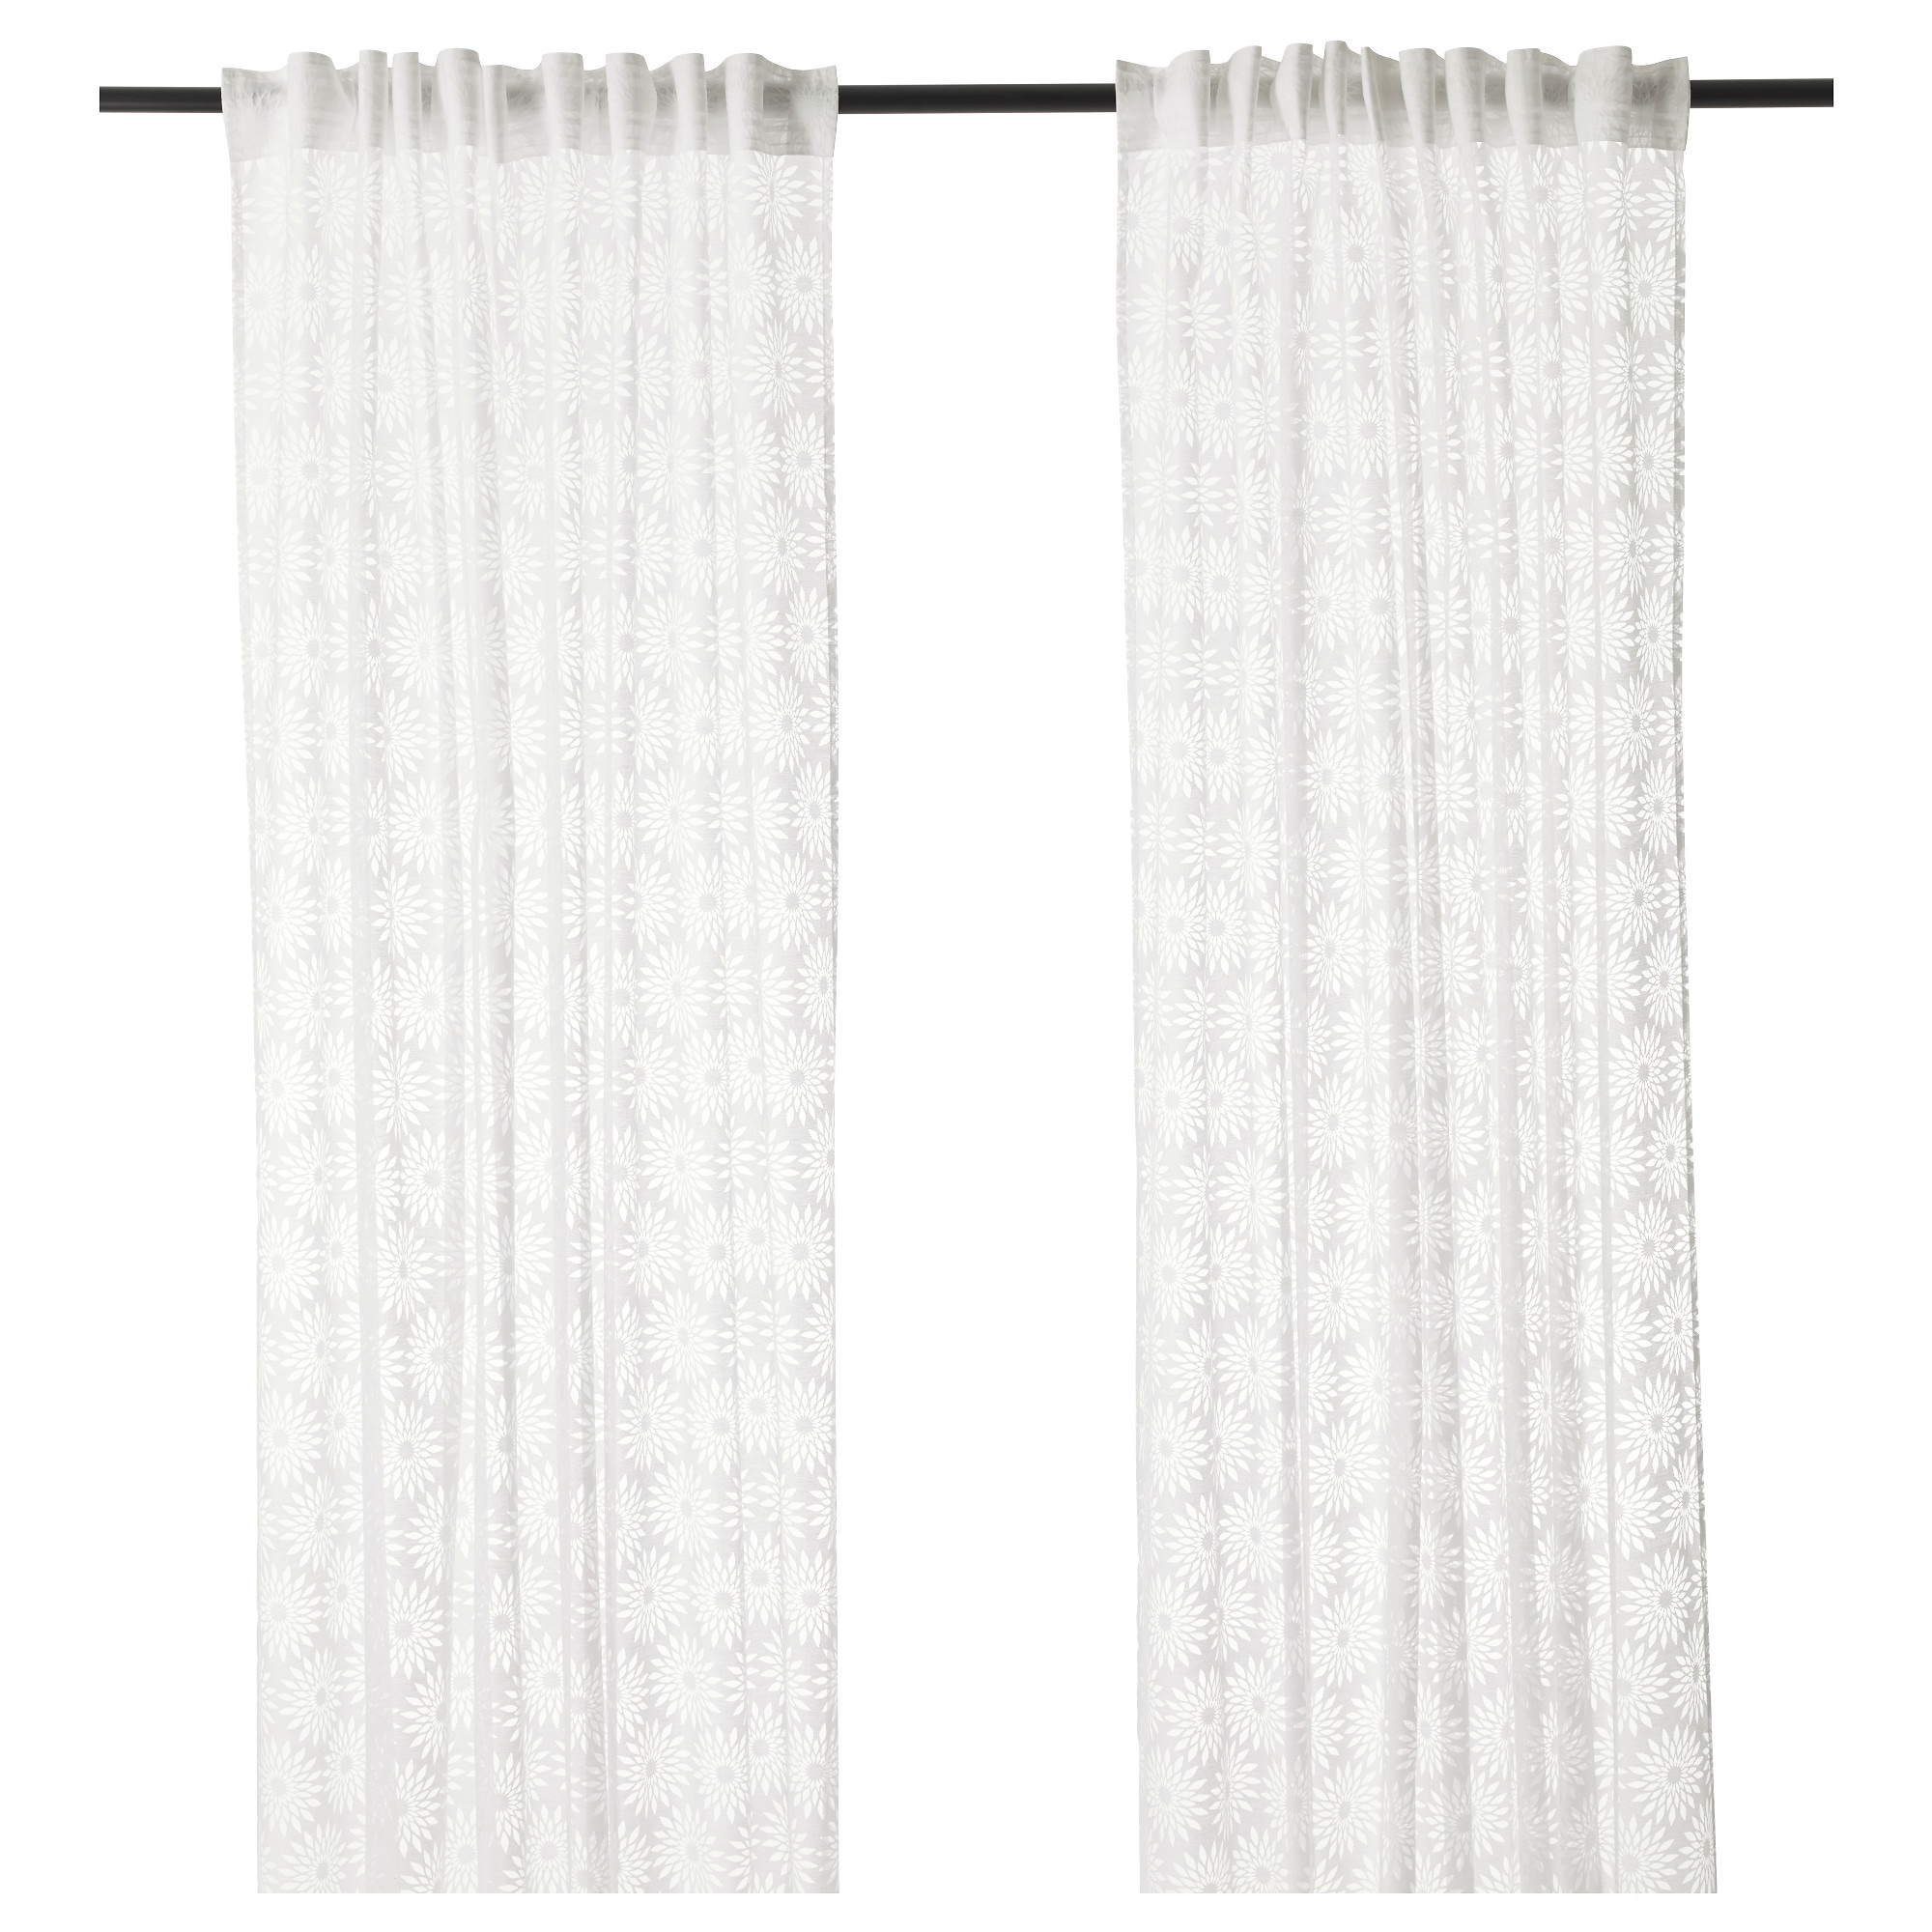 Bunk bed curtains ikea the curtains are four lenda - Hemmafest Sheer Curtains 1 Pair White Length 300 Cm Width 145 Cm